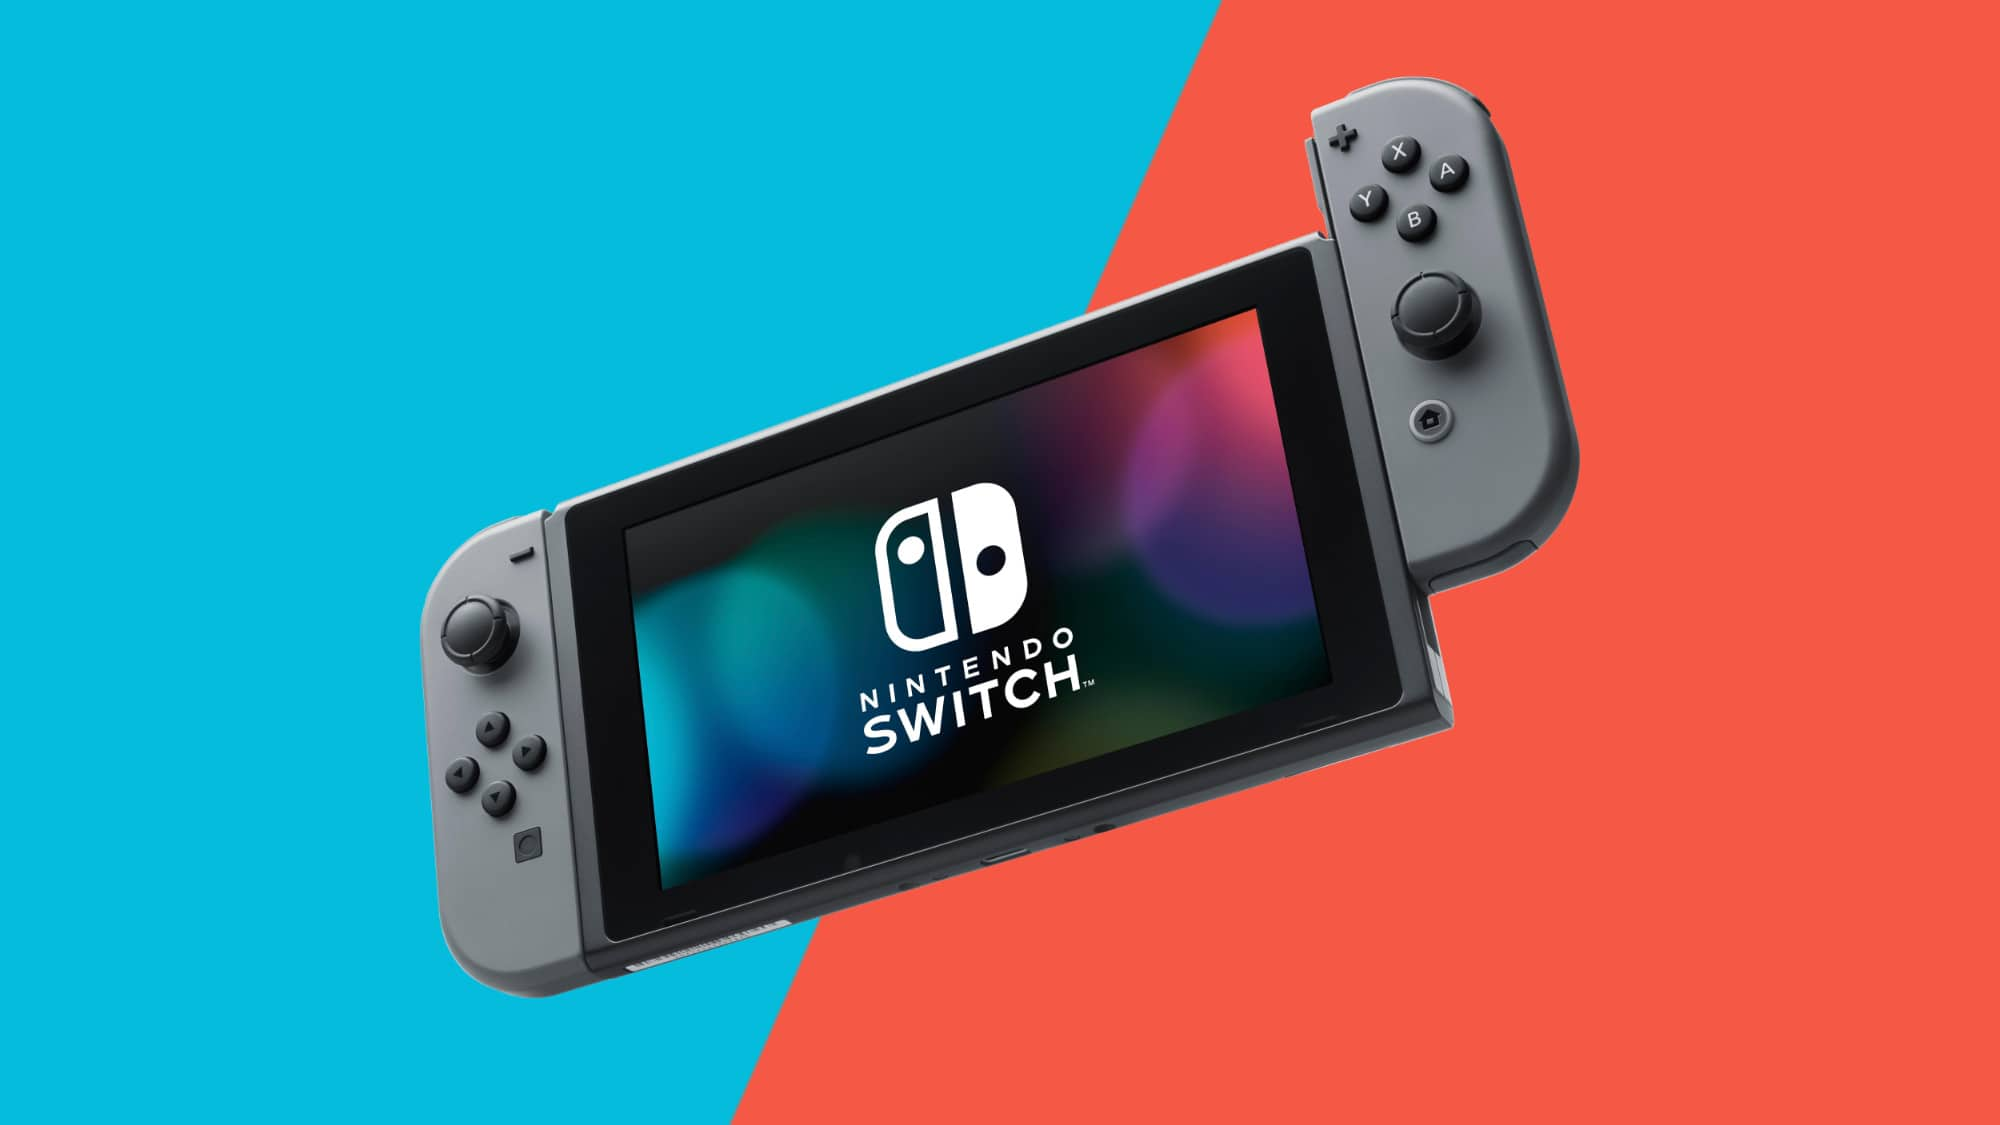 A new version of Nintendo Switch is reportedly coming out 2021